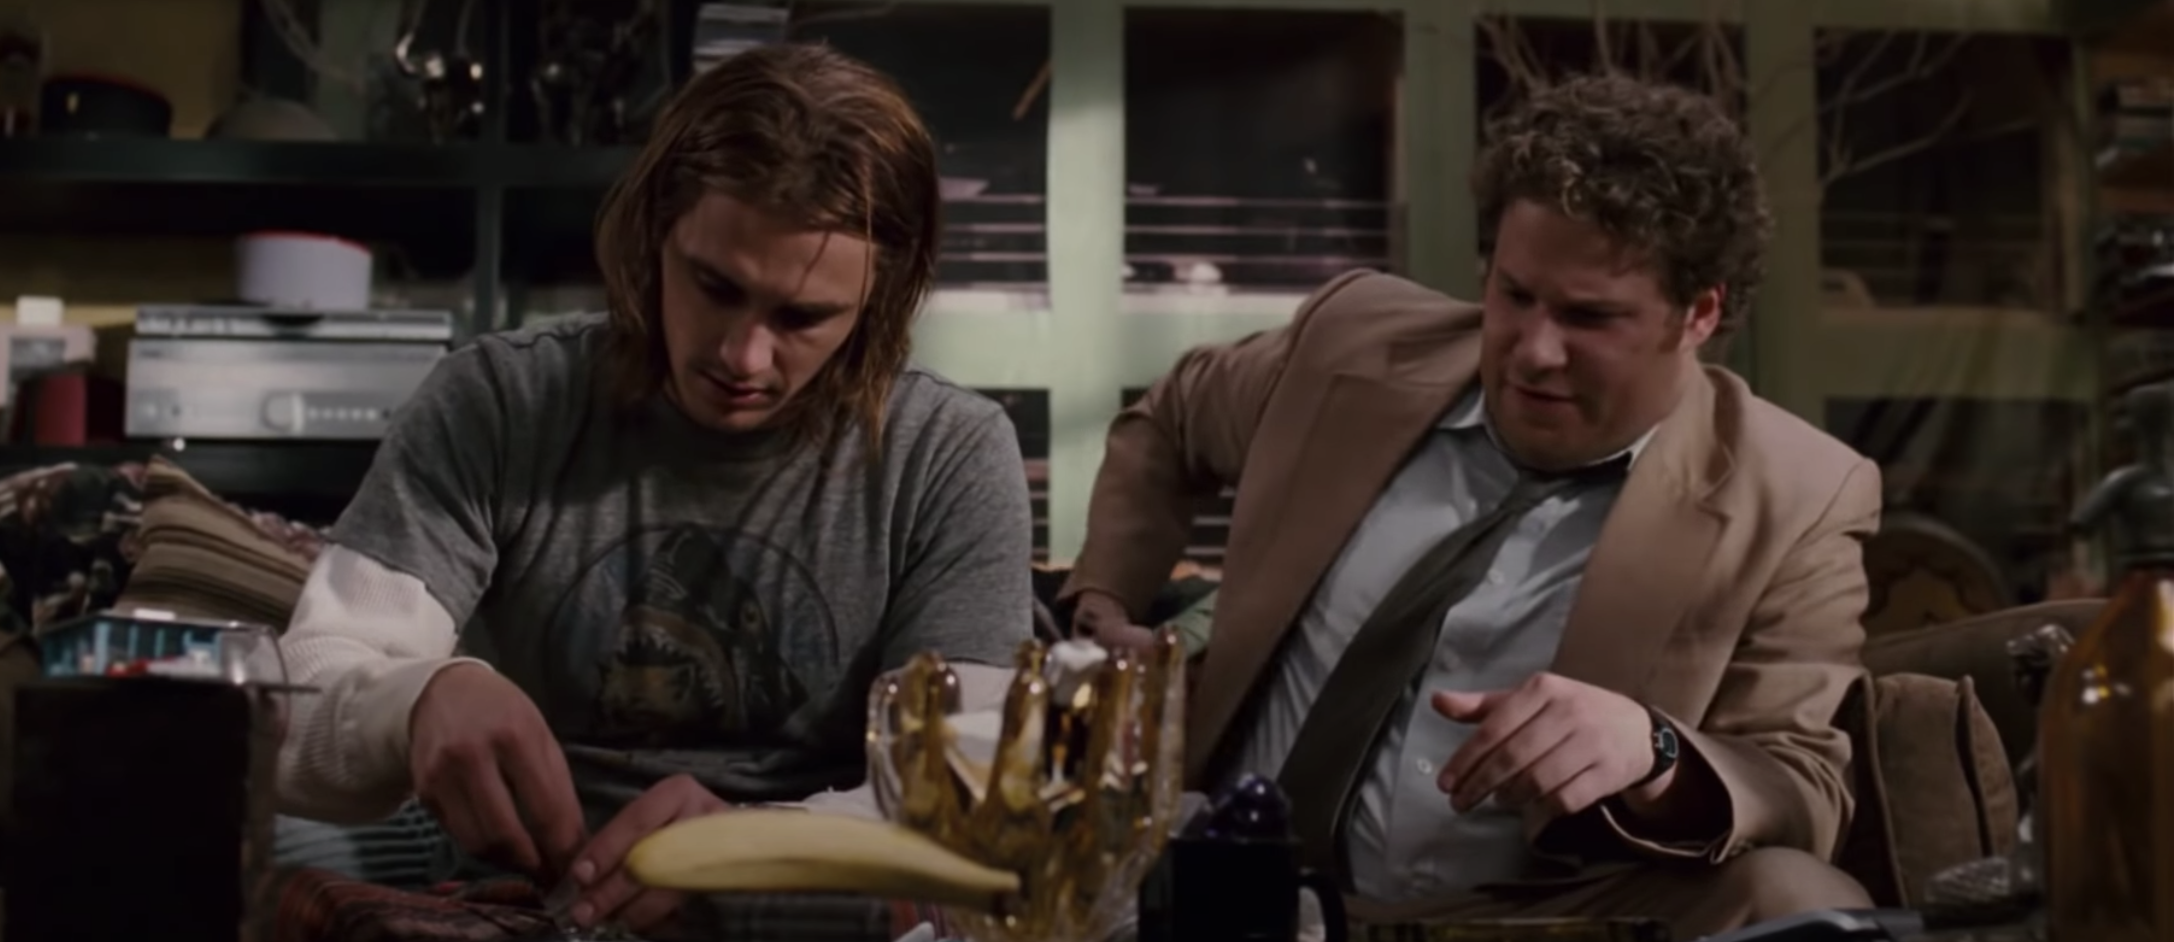 Dale buying pot from Saul in Pineapple Express